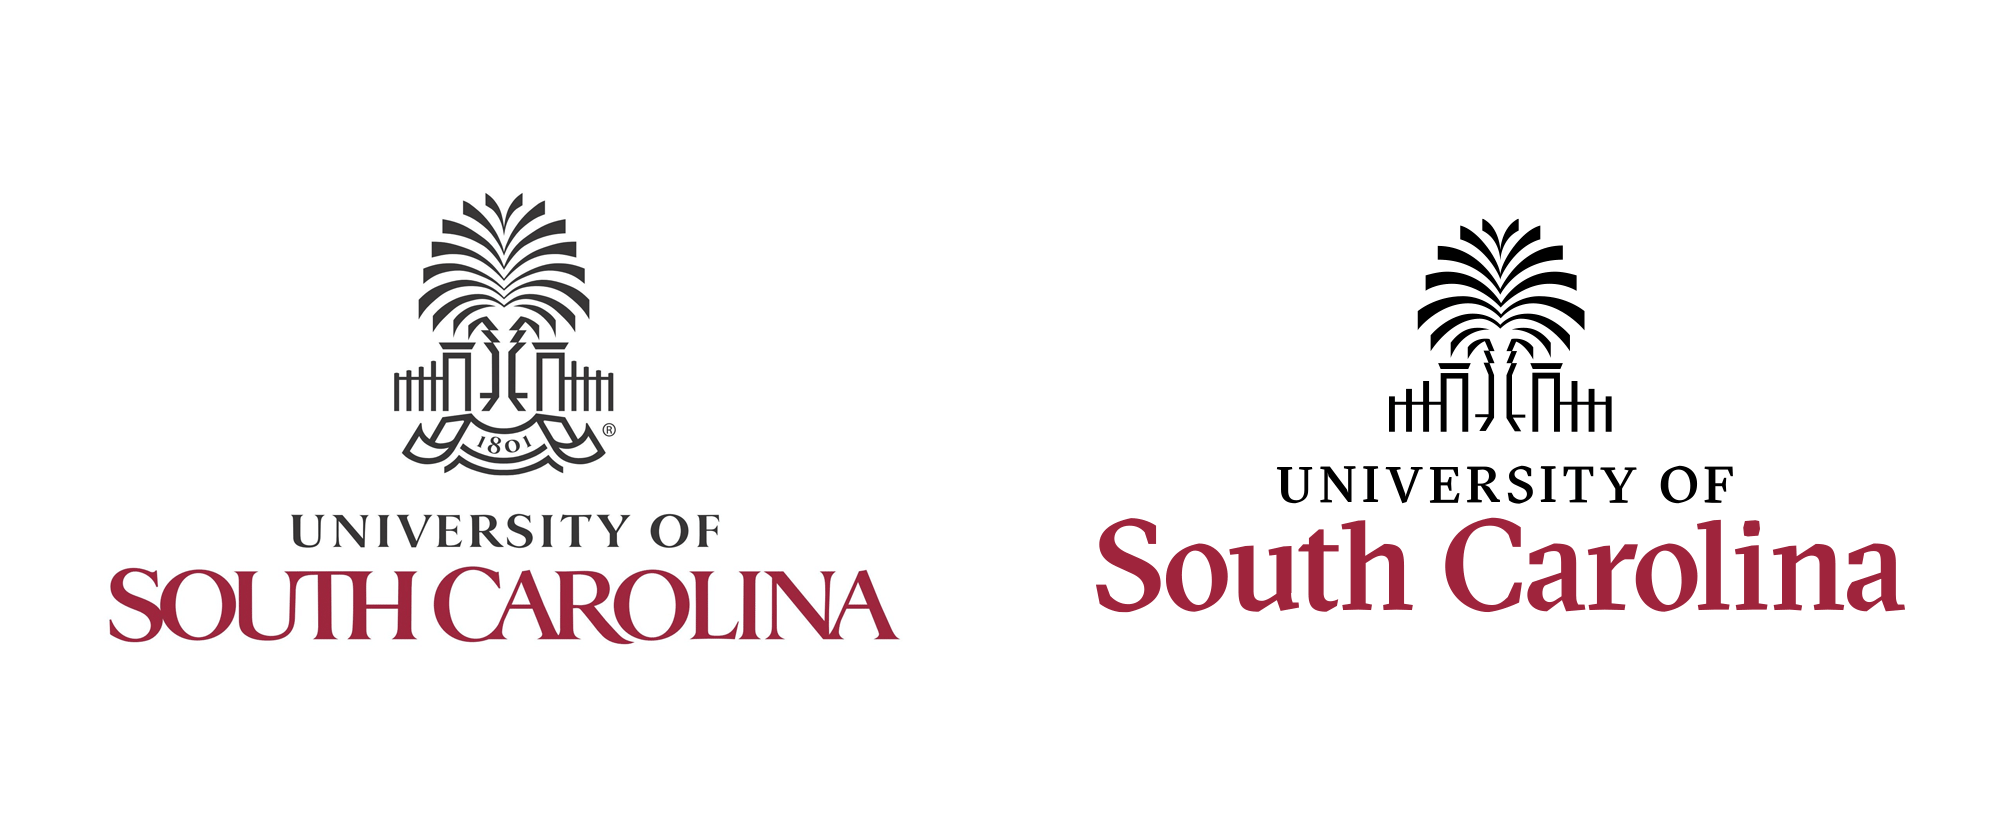 New Logos for University of South Carolina